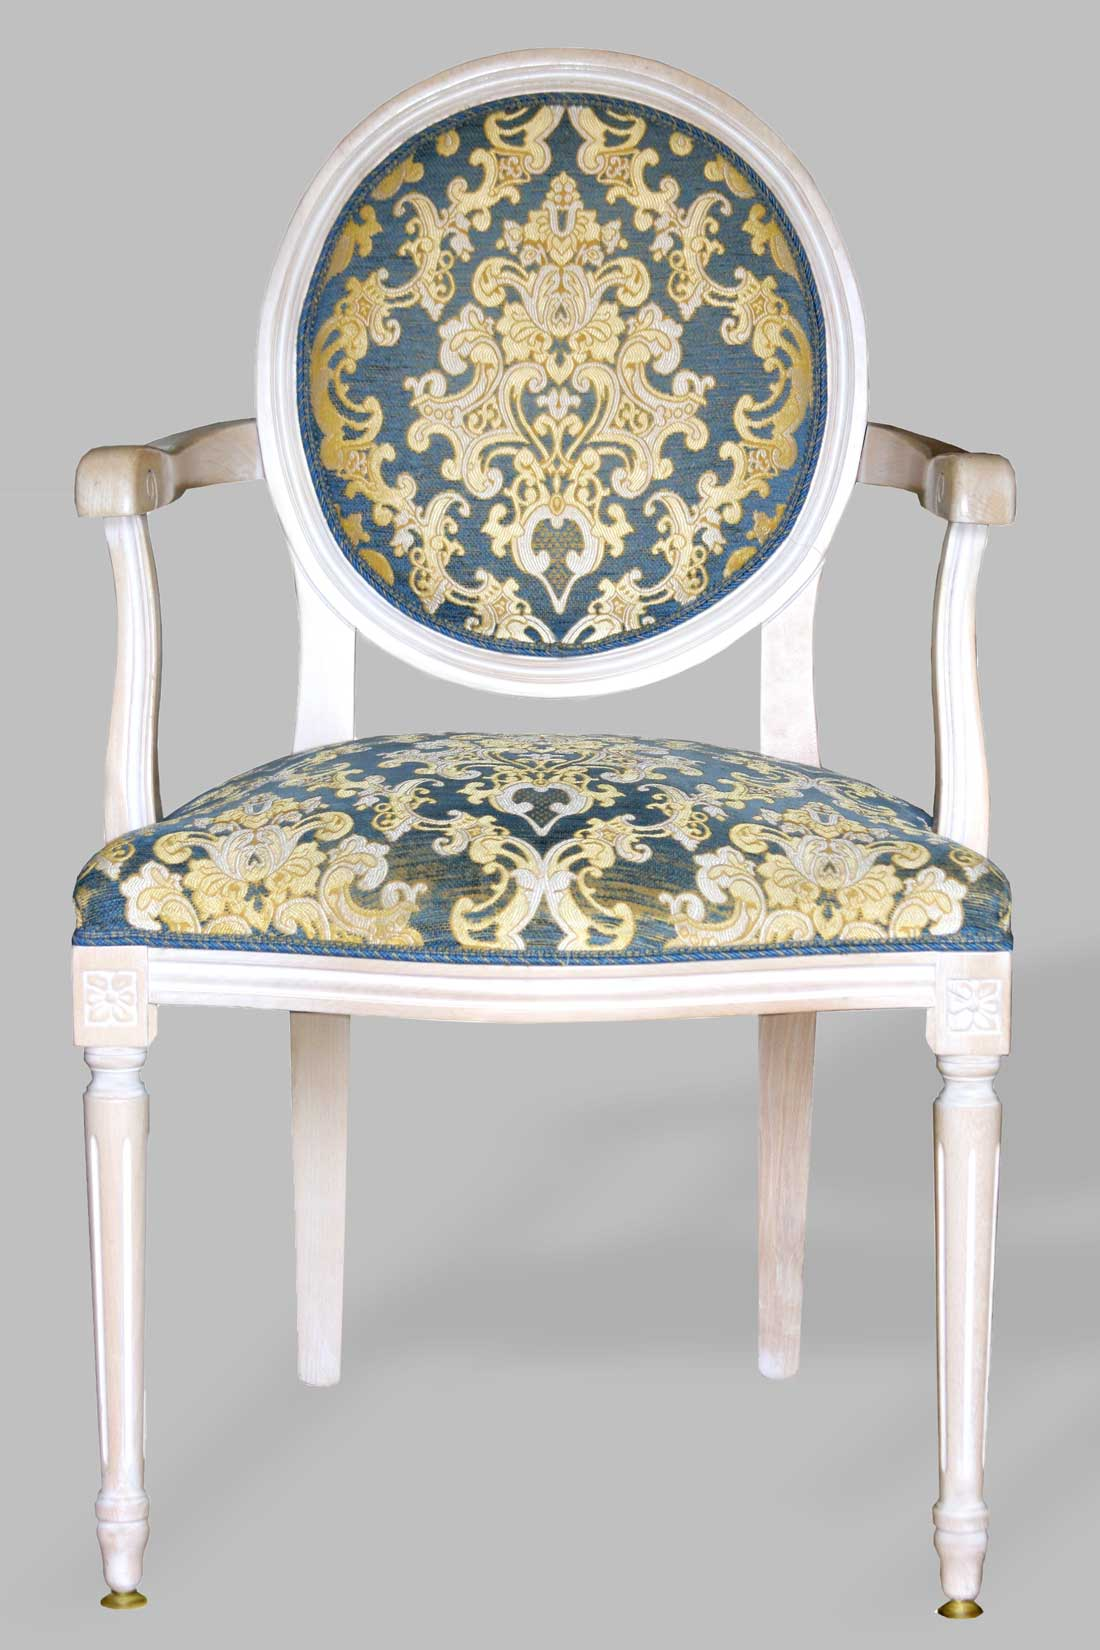 Top 4 Chair Styles for your E